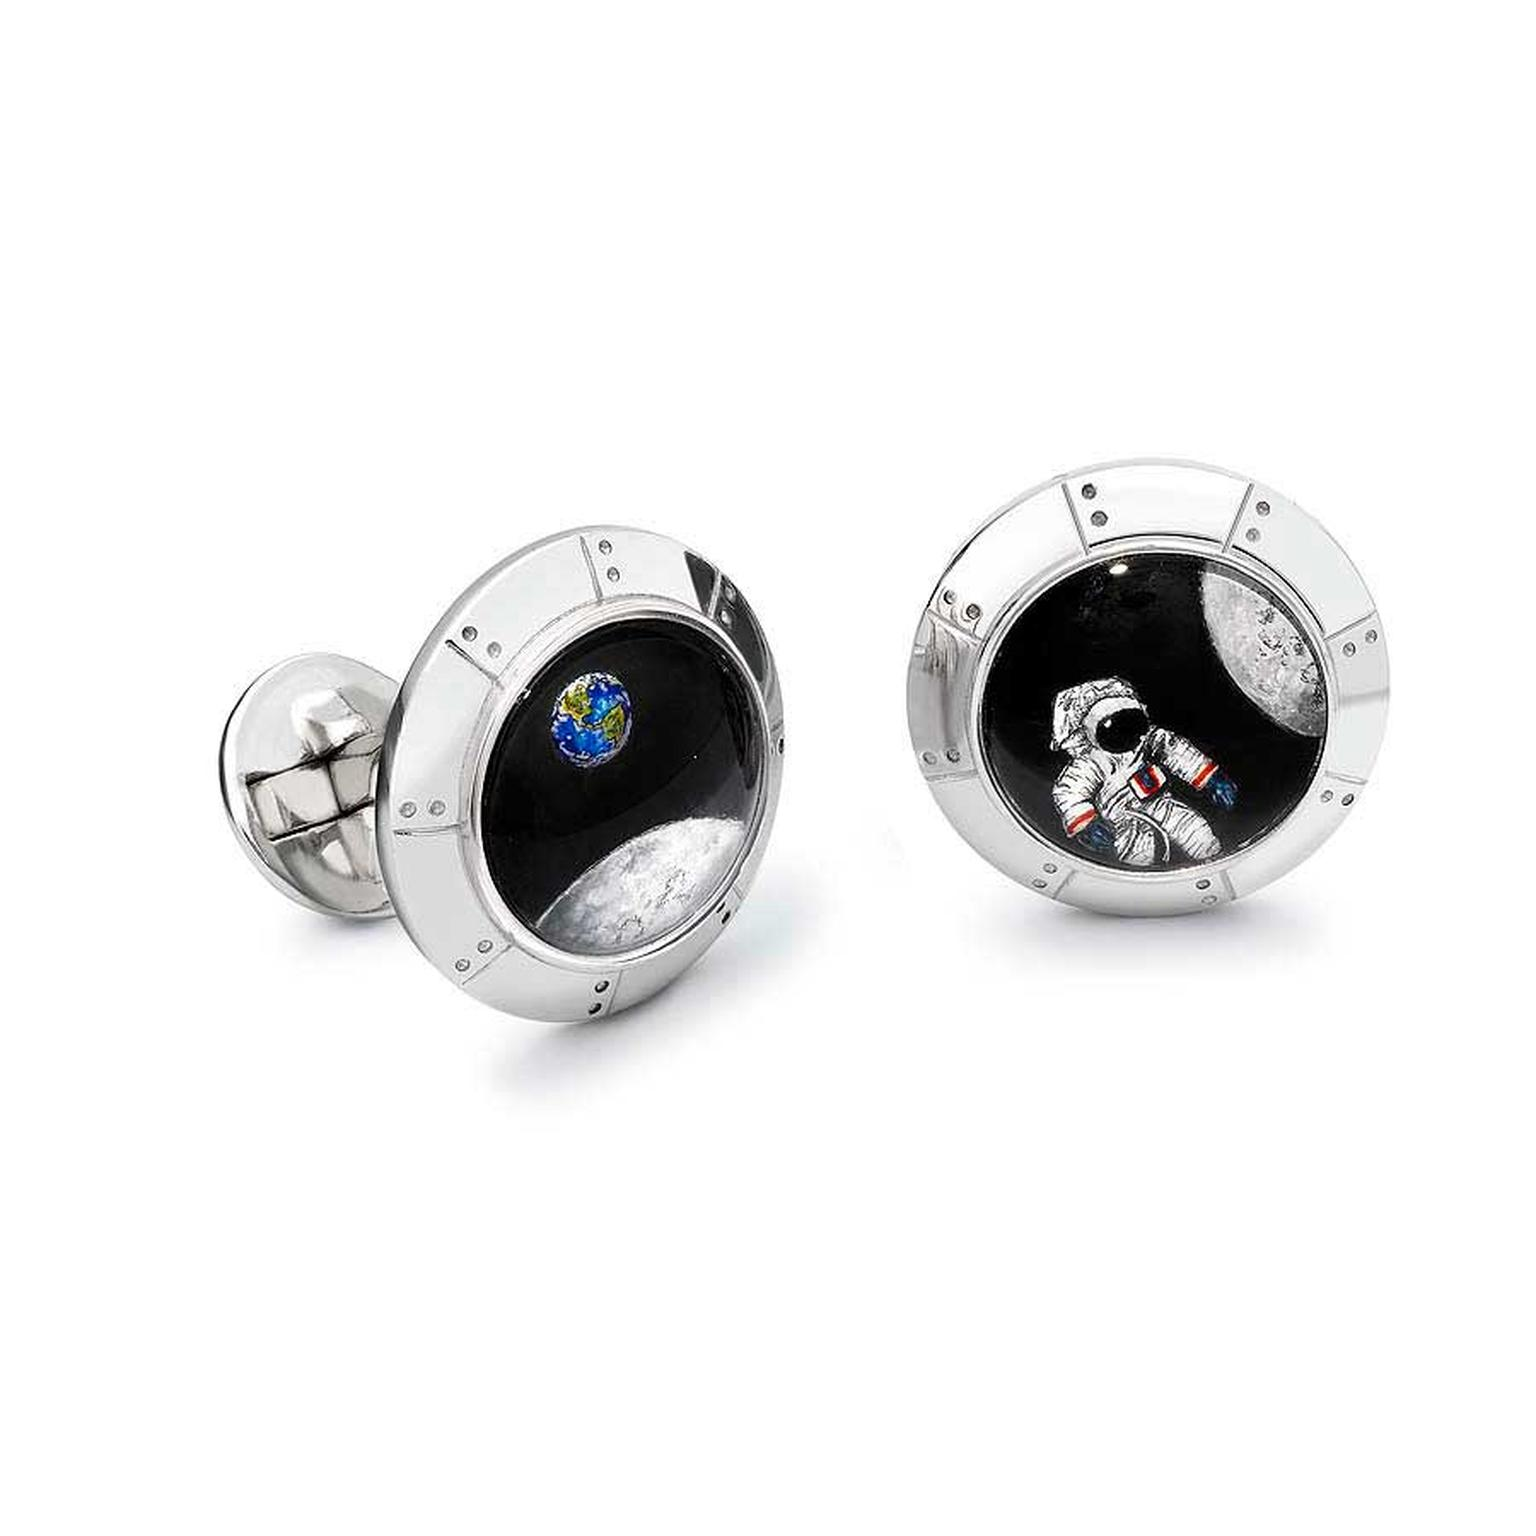 Theo Fennell Essex Crystal Moon Safari Cufflinks (£9,850). Essex Crystal is a process where rock crystals are carved and engraved from behind and then hand painted to give a 3D appearance.